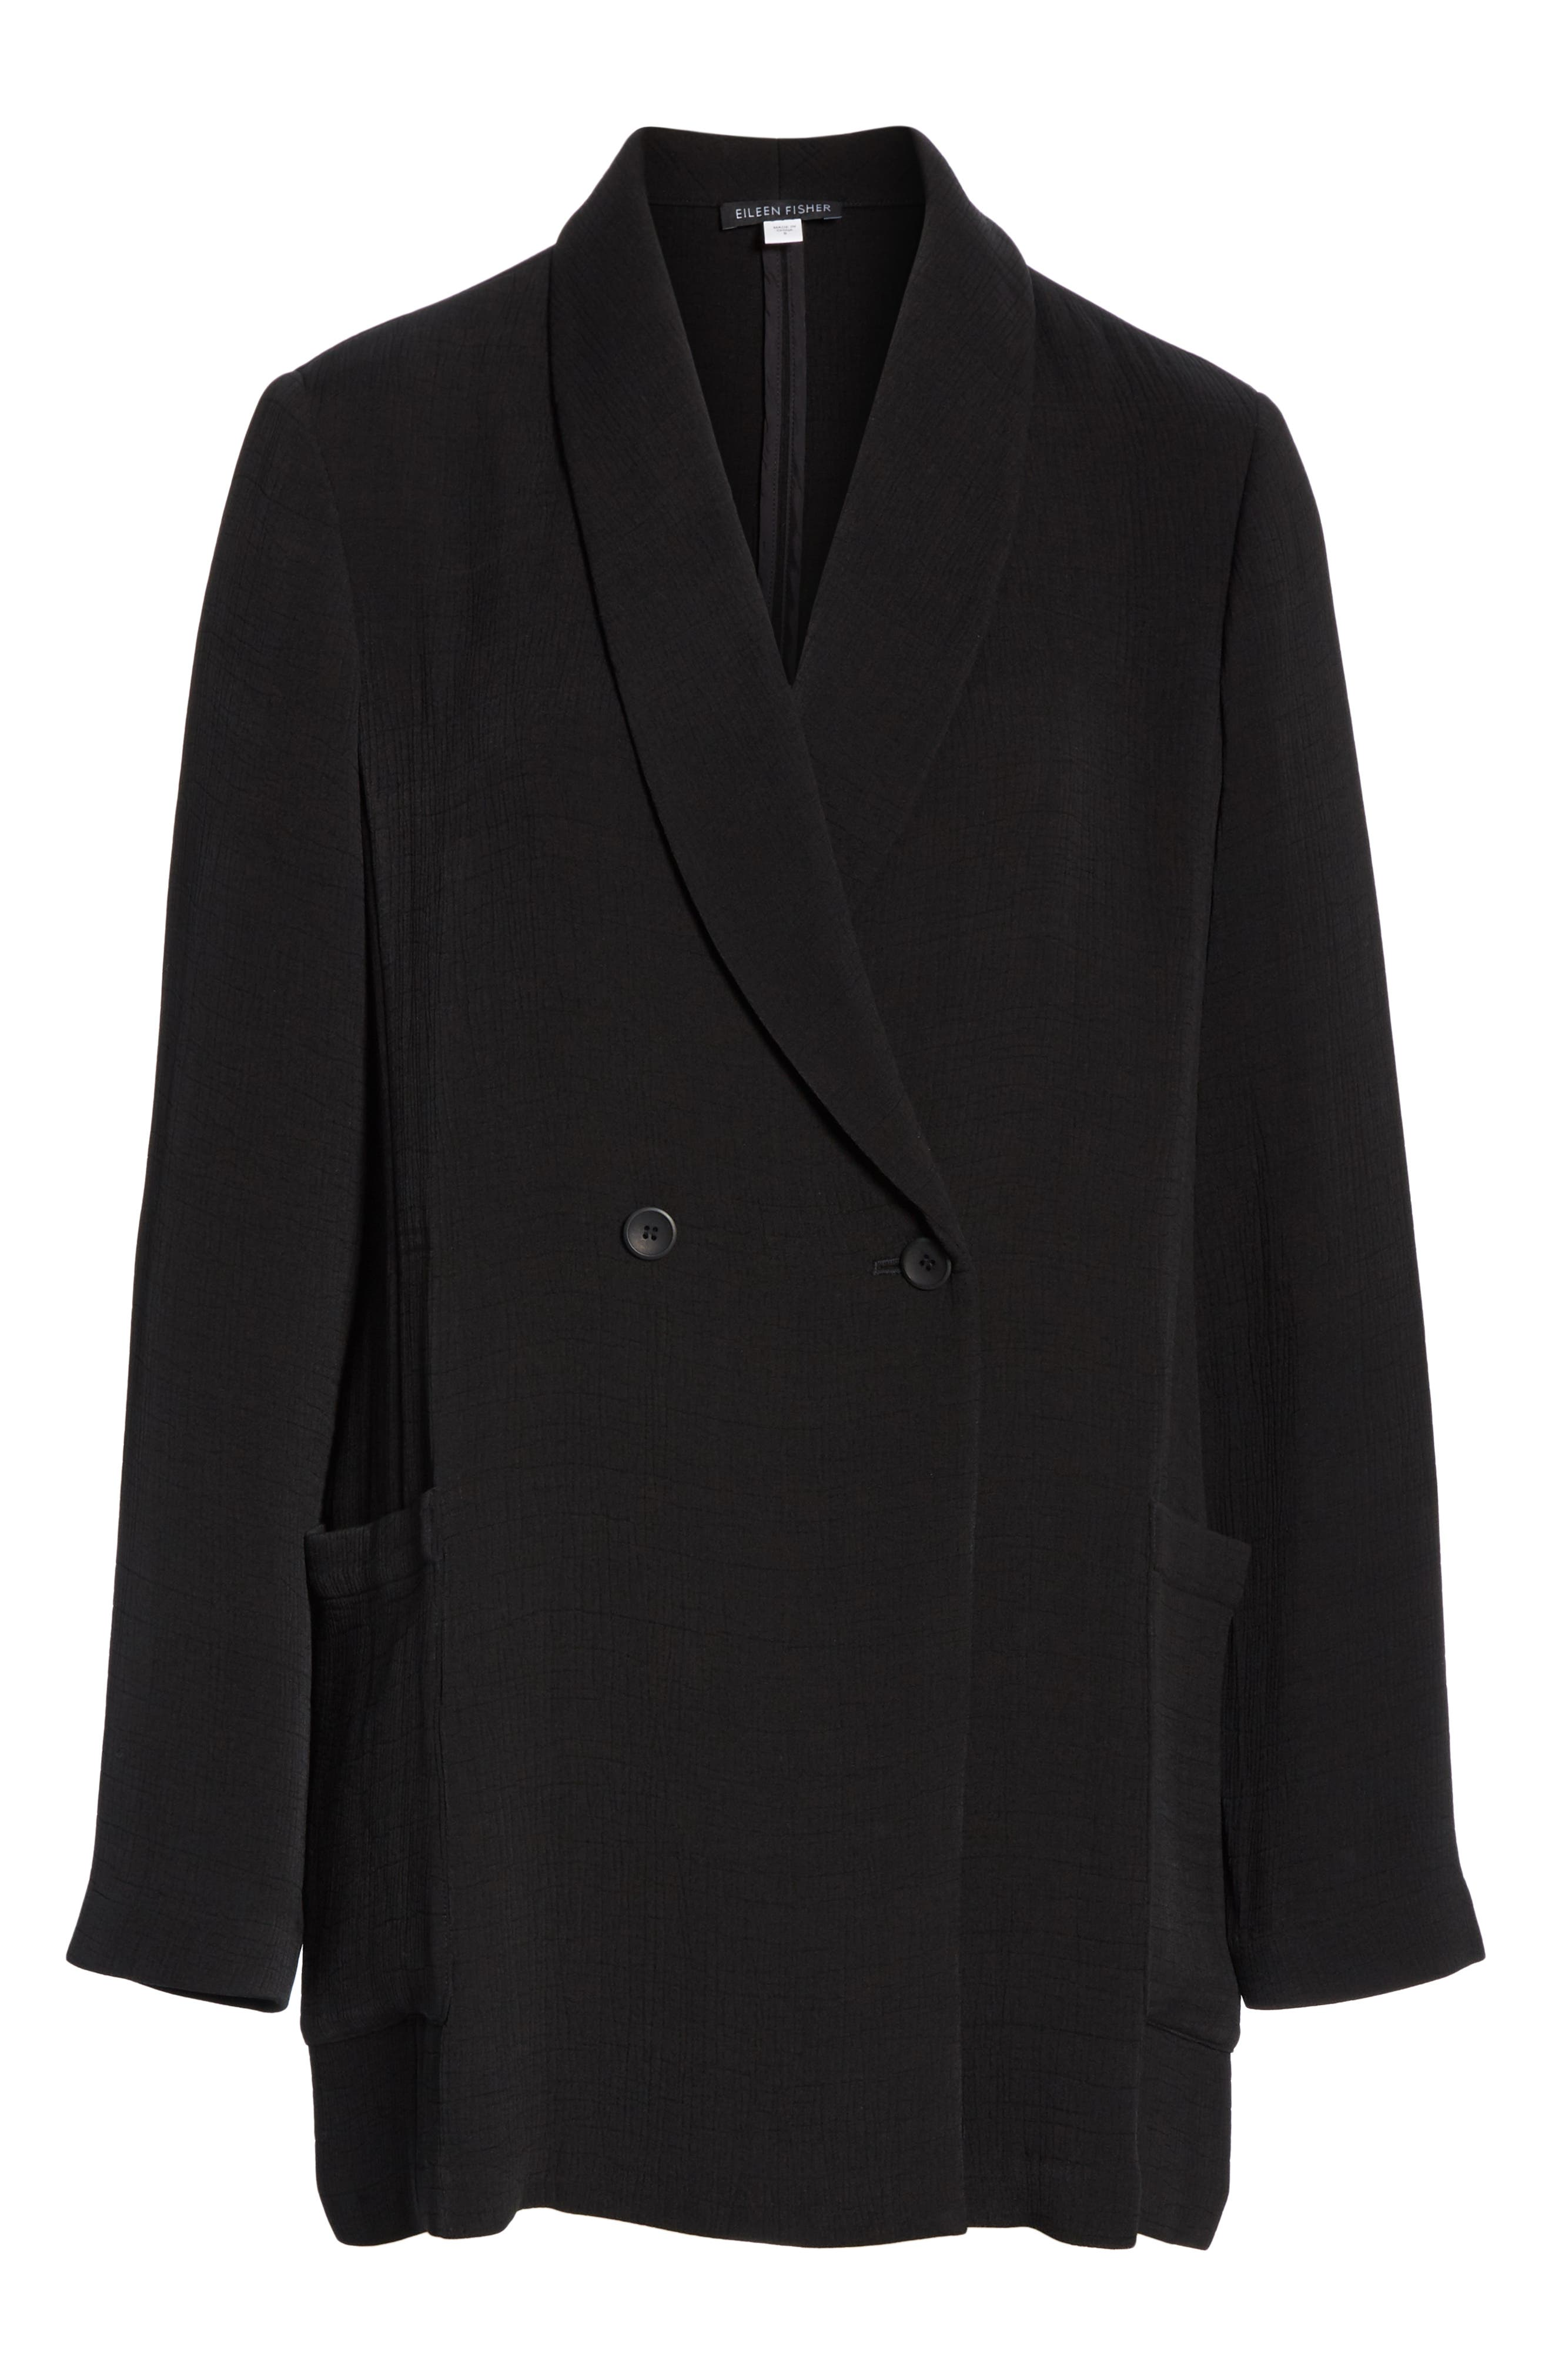 EILEEN FISHER, Double Breasted Blazer, Alternate thumbnail 5, color, BLACK